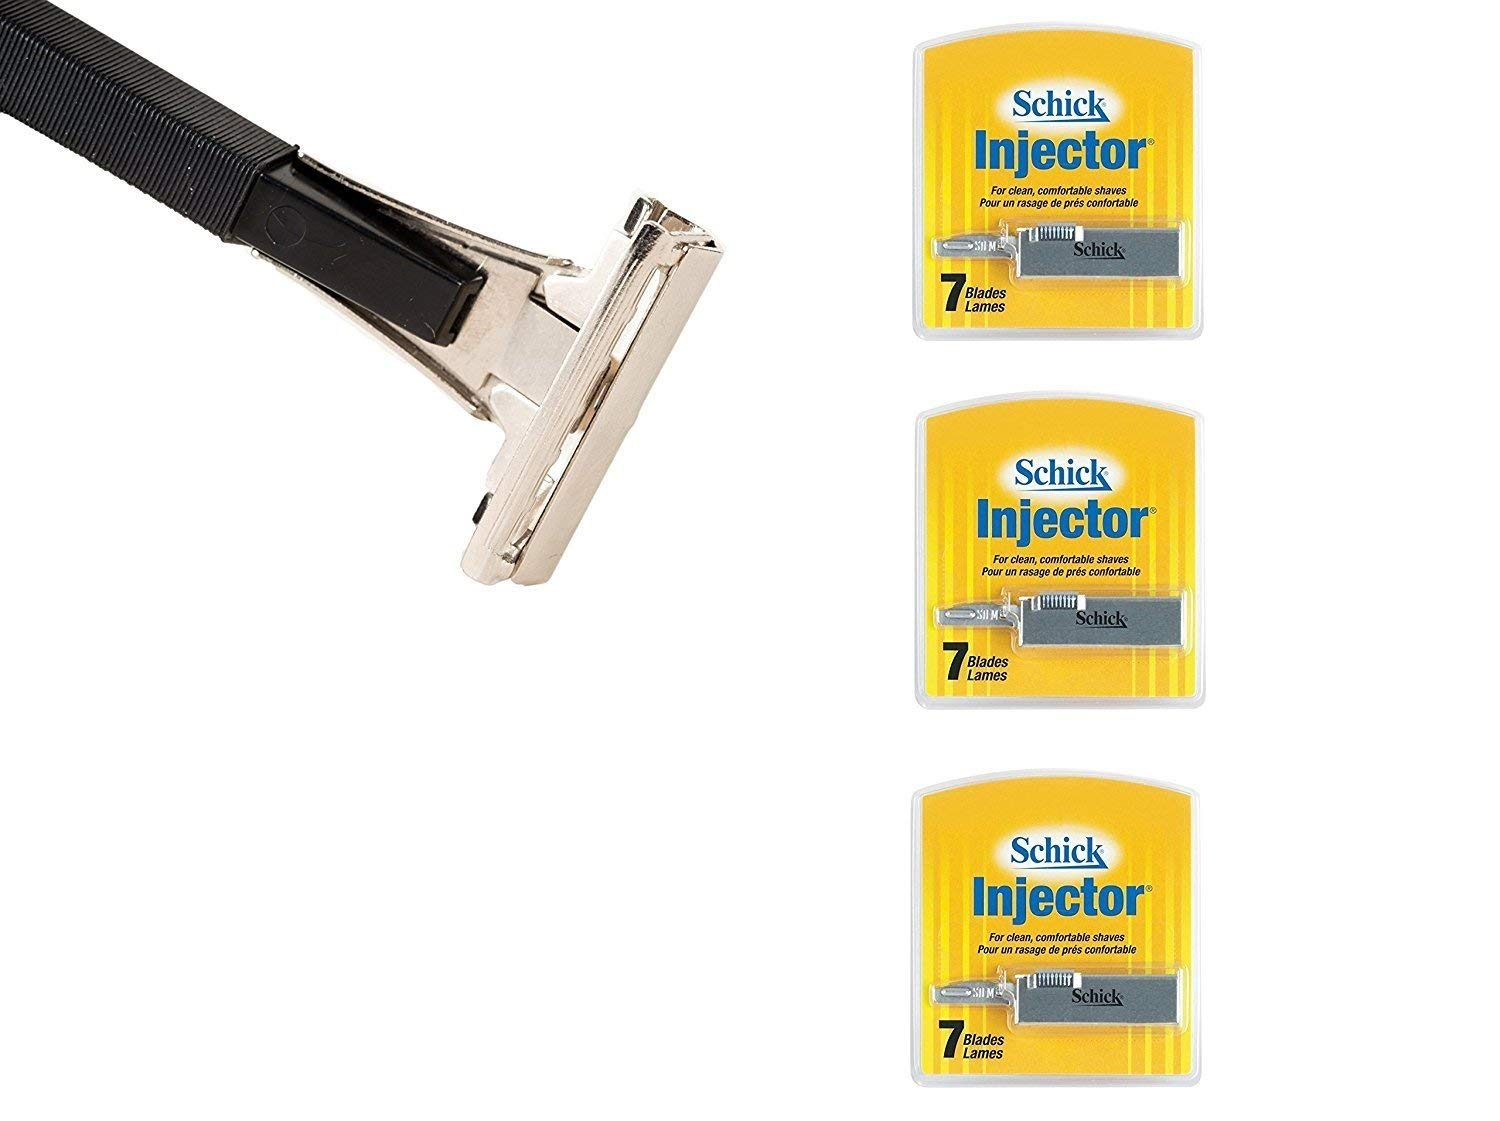 Shave Classic Single Edge Razor Handle with Schick Injector Refill Blades 7 Ct. (Pack of 3) + FREE Schick Slim Twin ST for Sensitive Skin